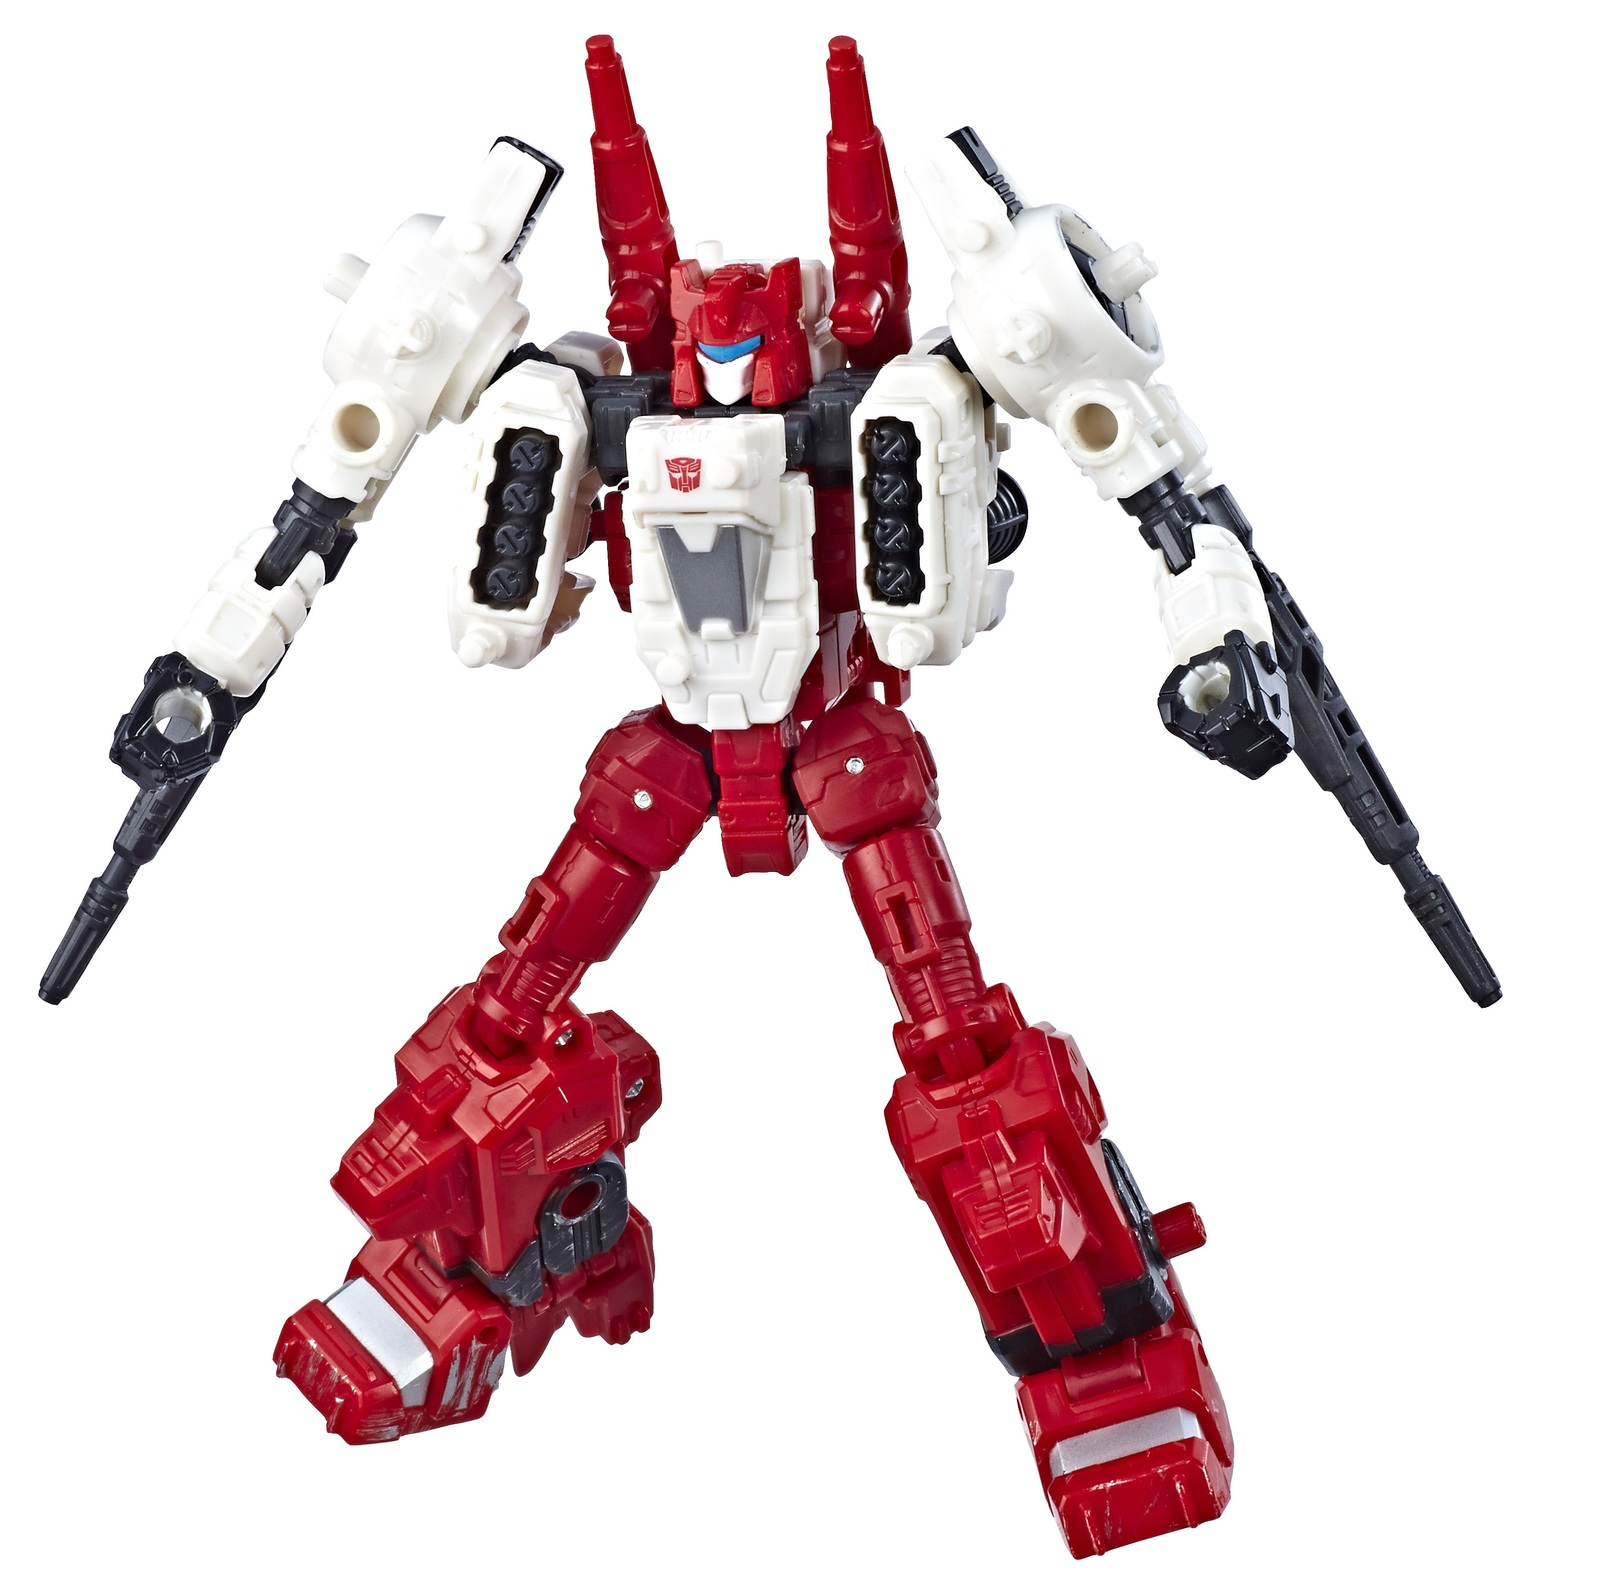 Transformers Generations War for Cybertron Prowl WFC Siege Action Figure instock